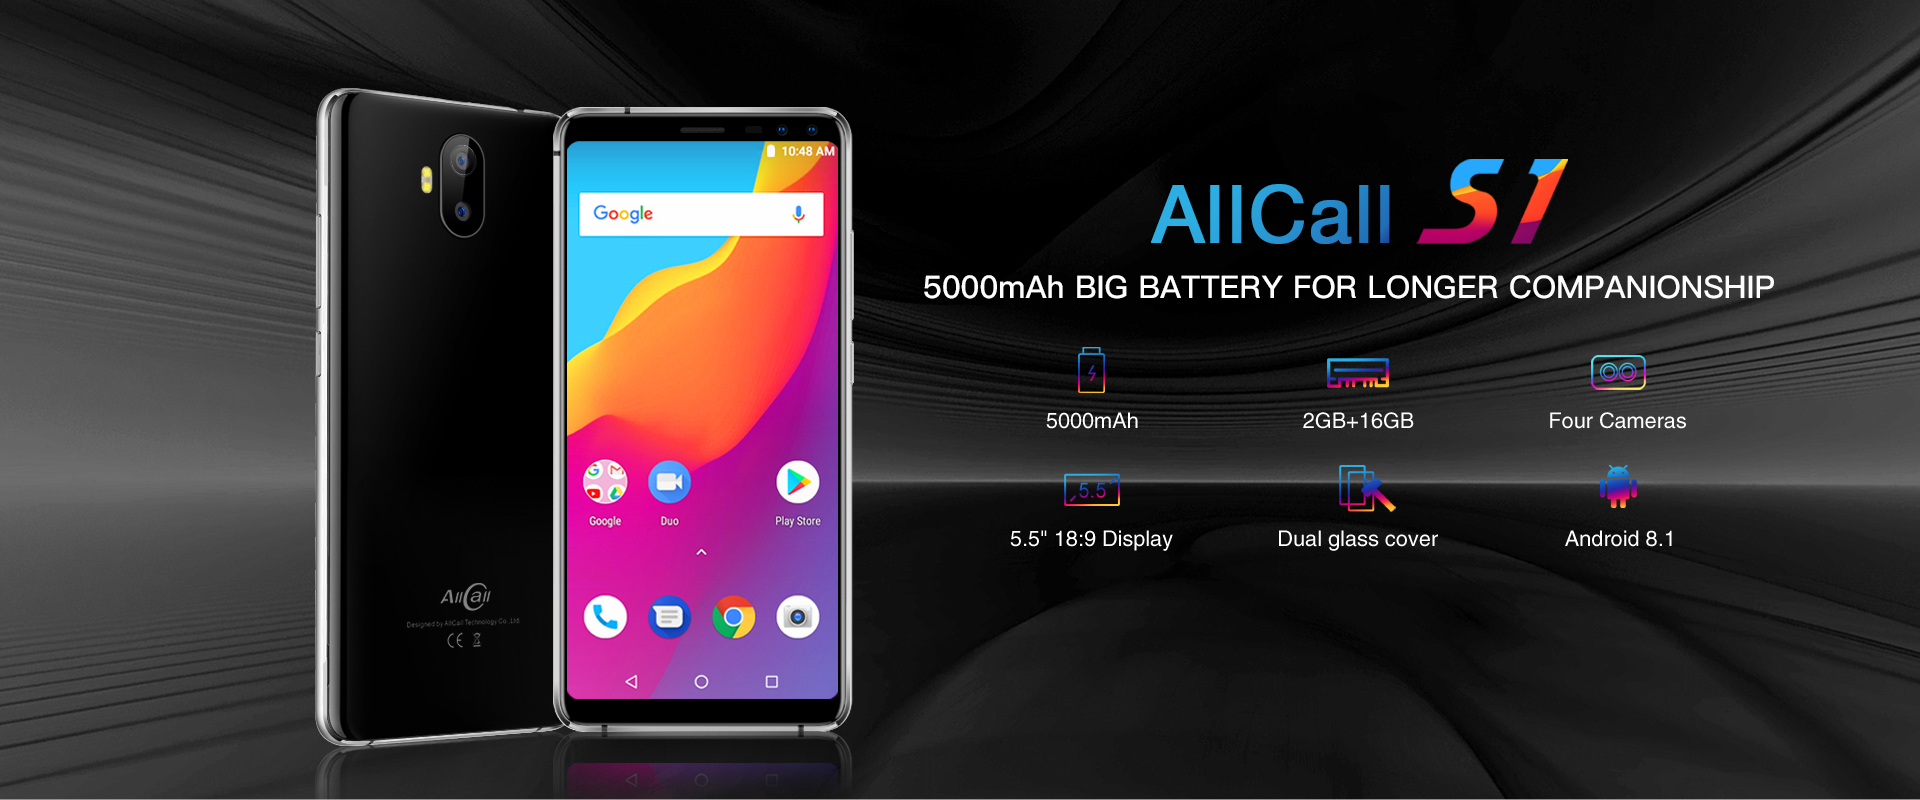 AllCall S1 finally confirmed to be a 5000mAh large battery phone with only $69.99